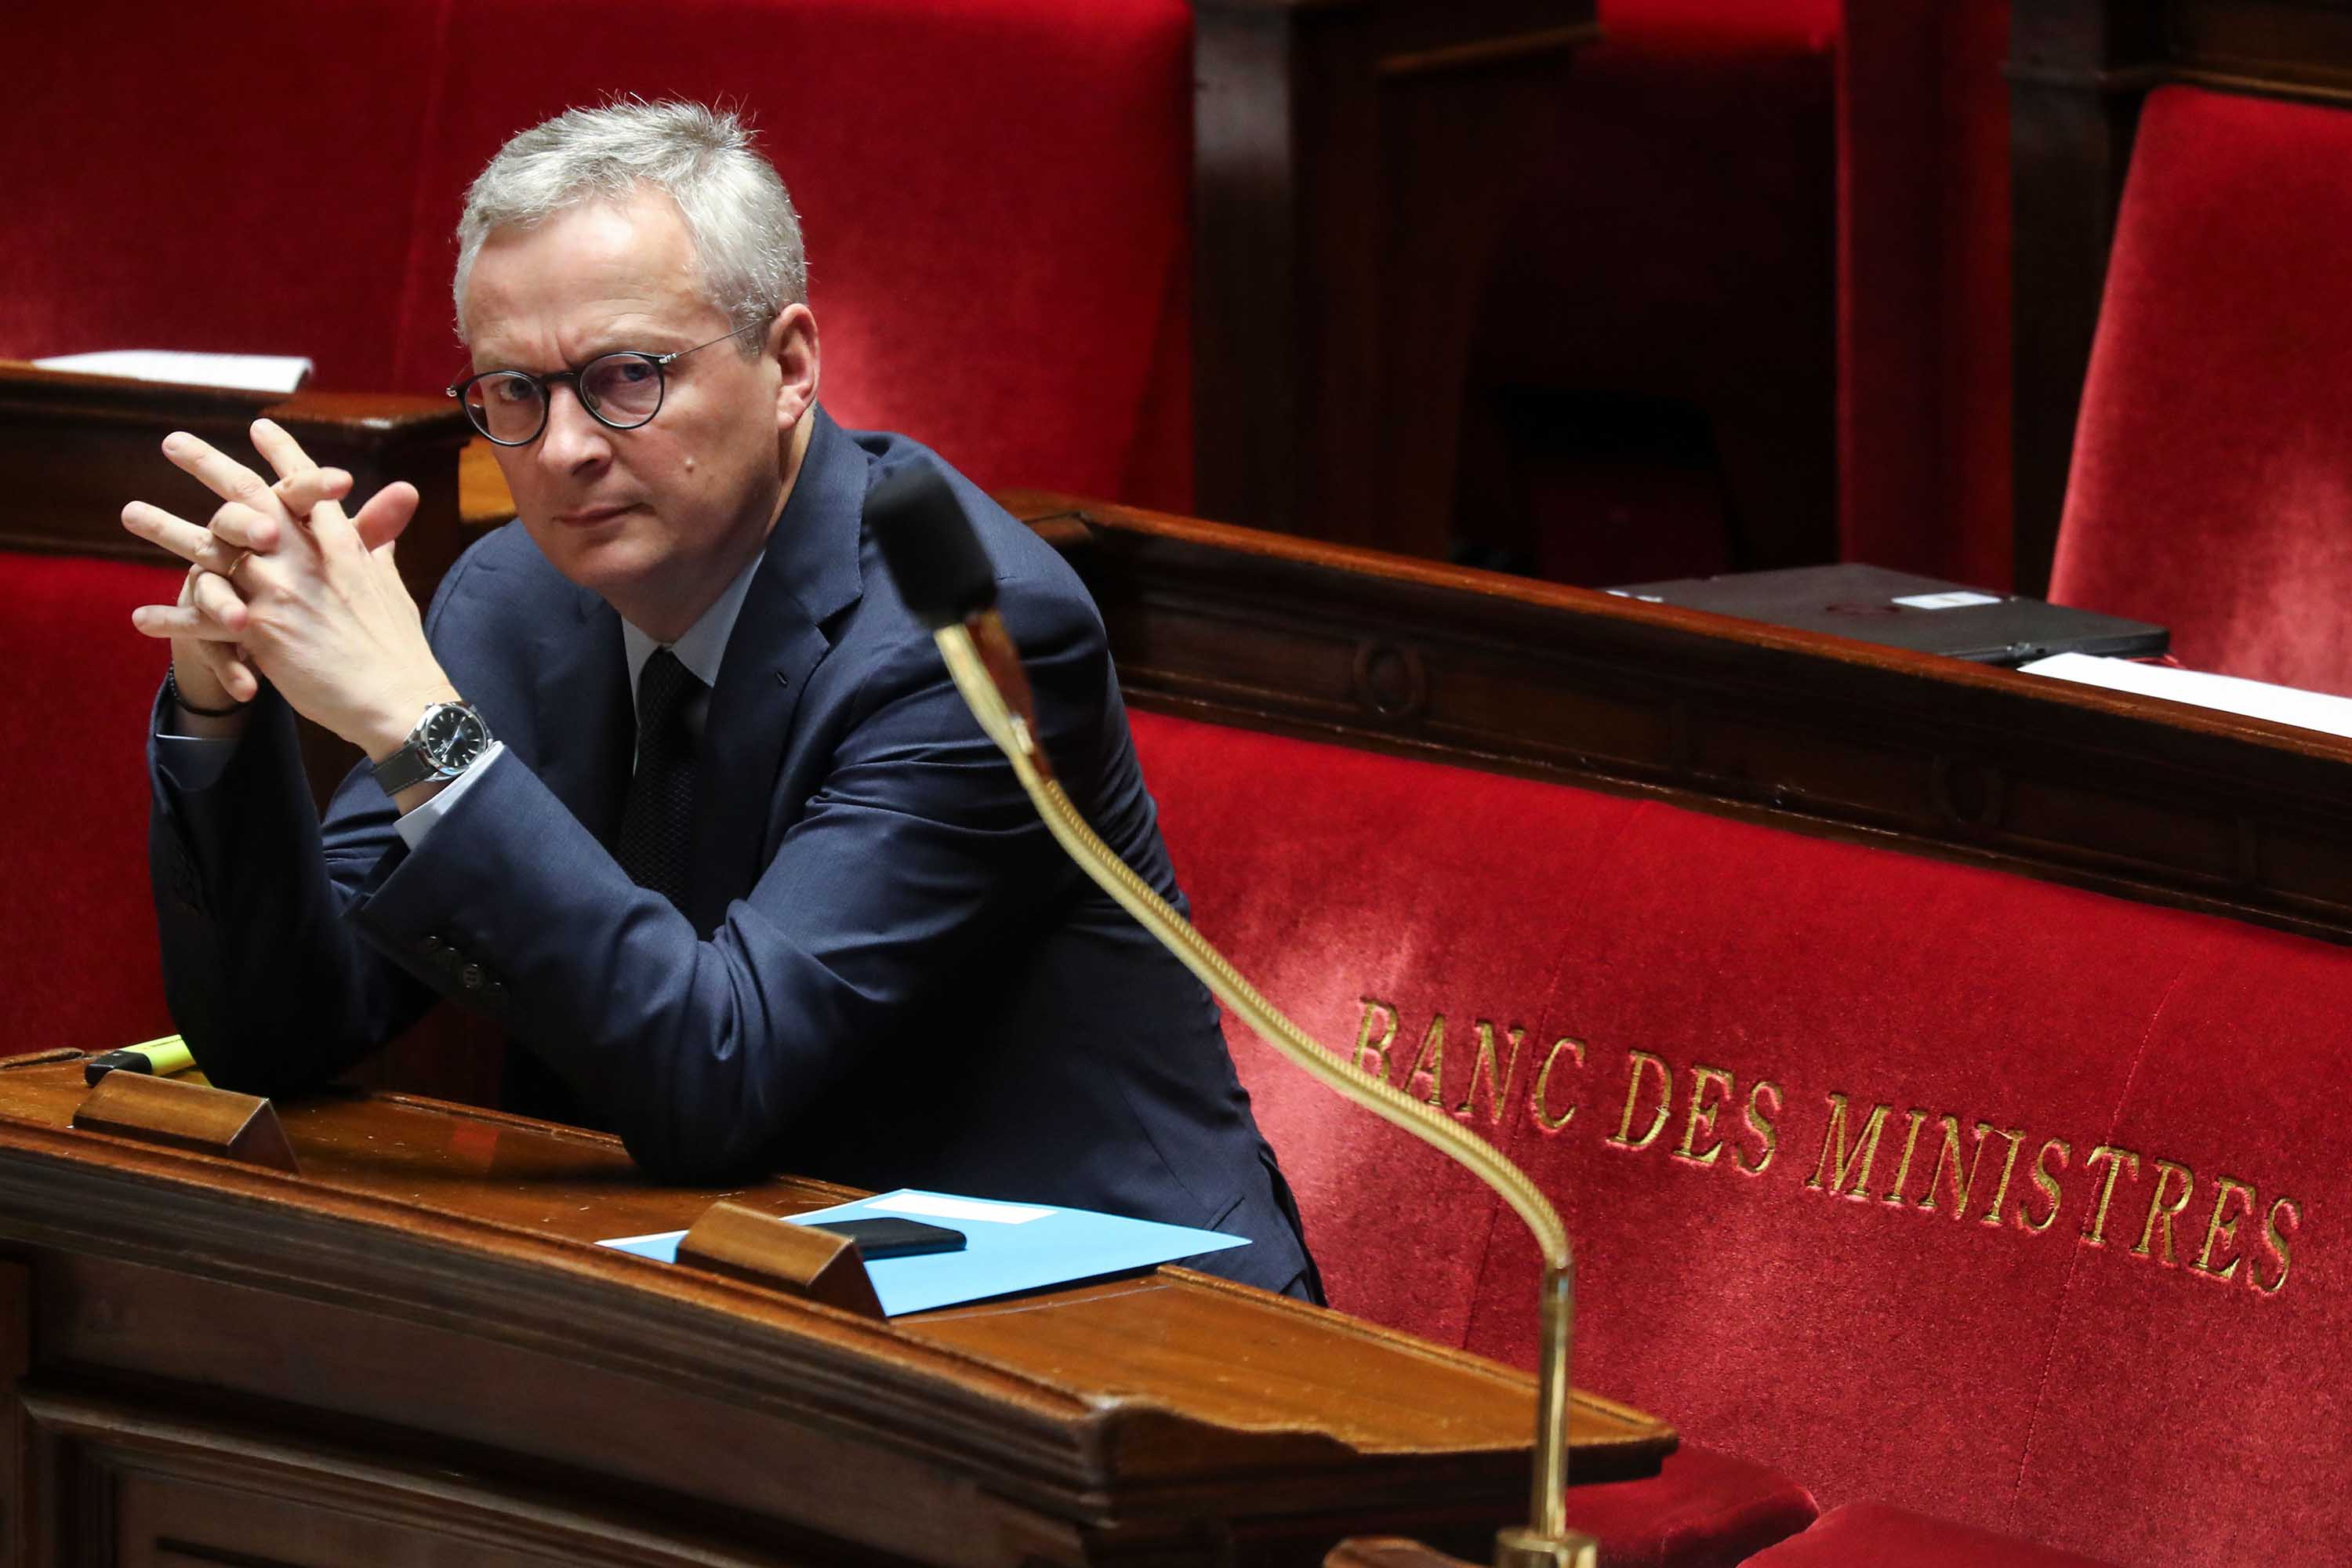 French finance minister Bruno Le Maire during a debate at the National Assembly in Paris on March 19.